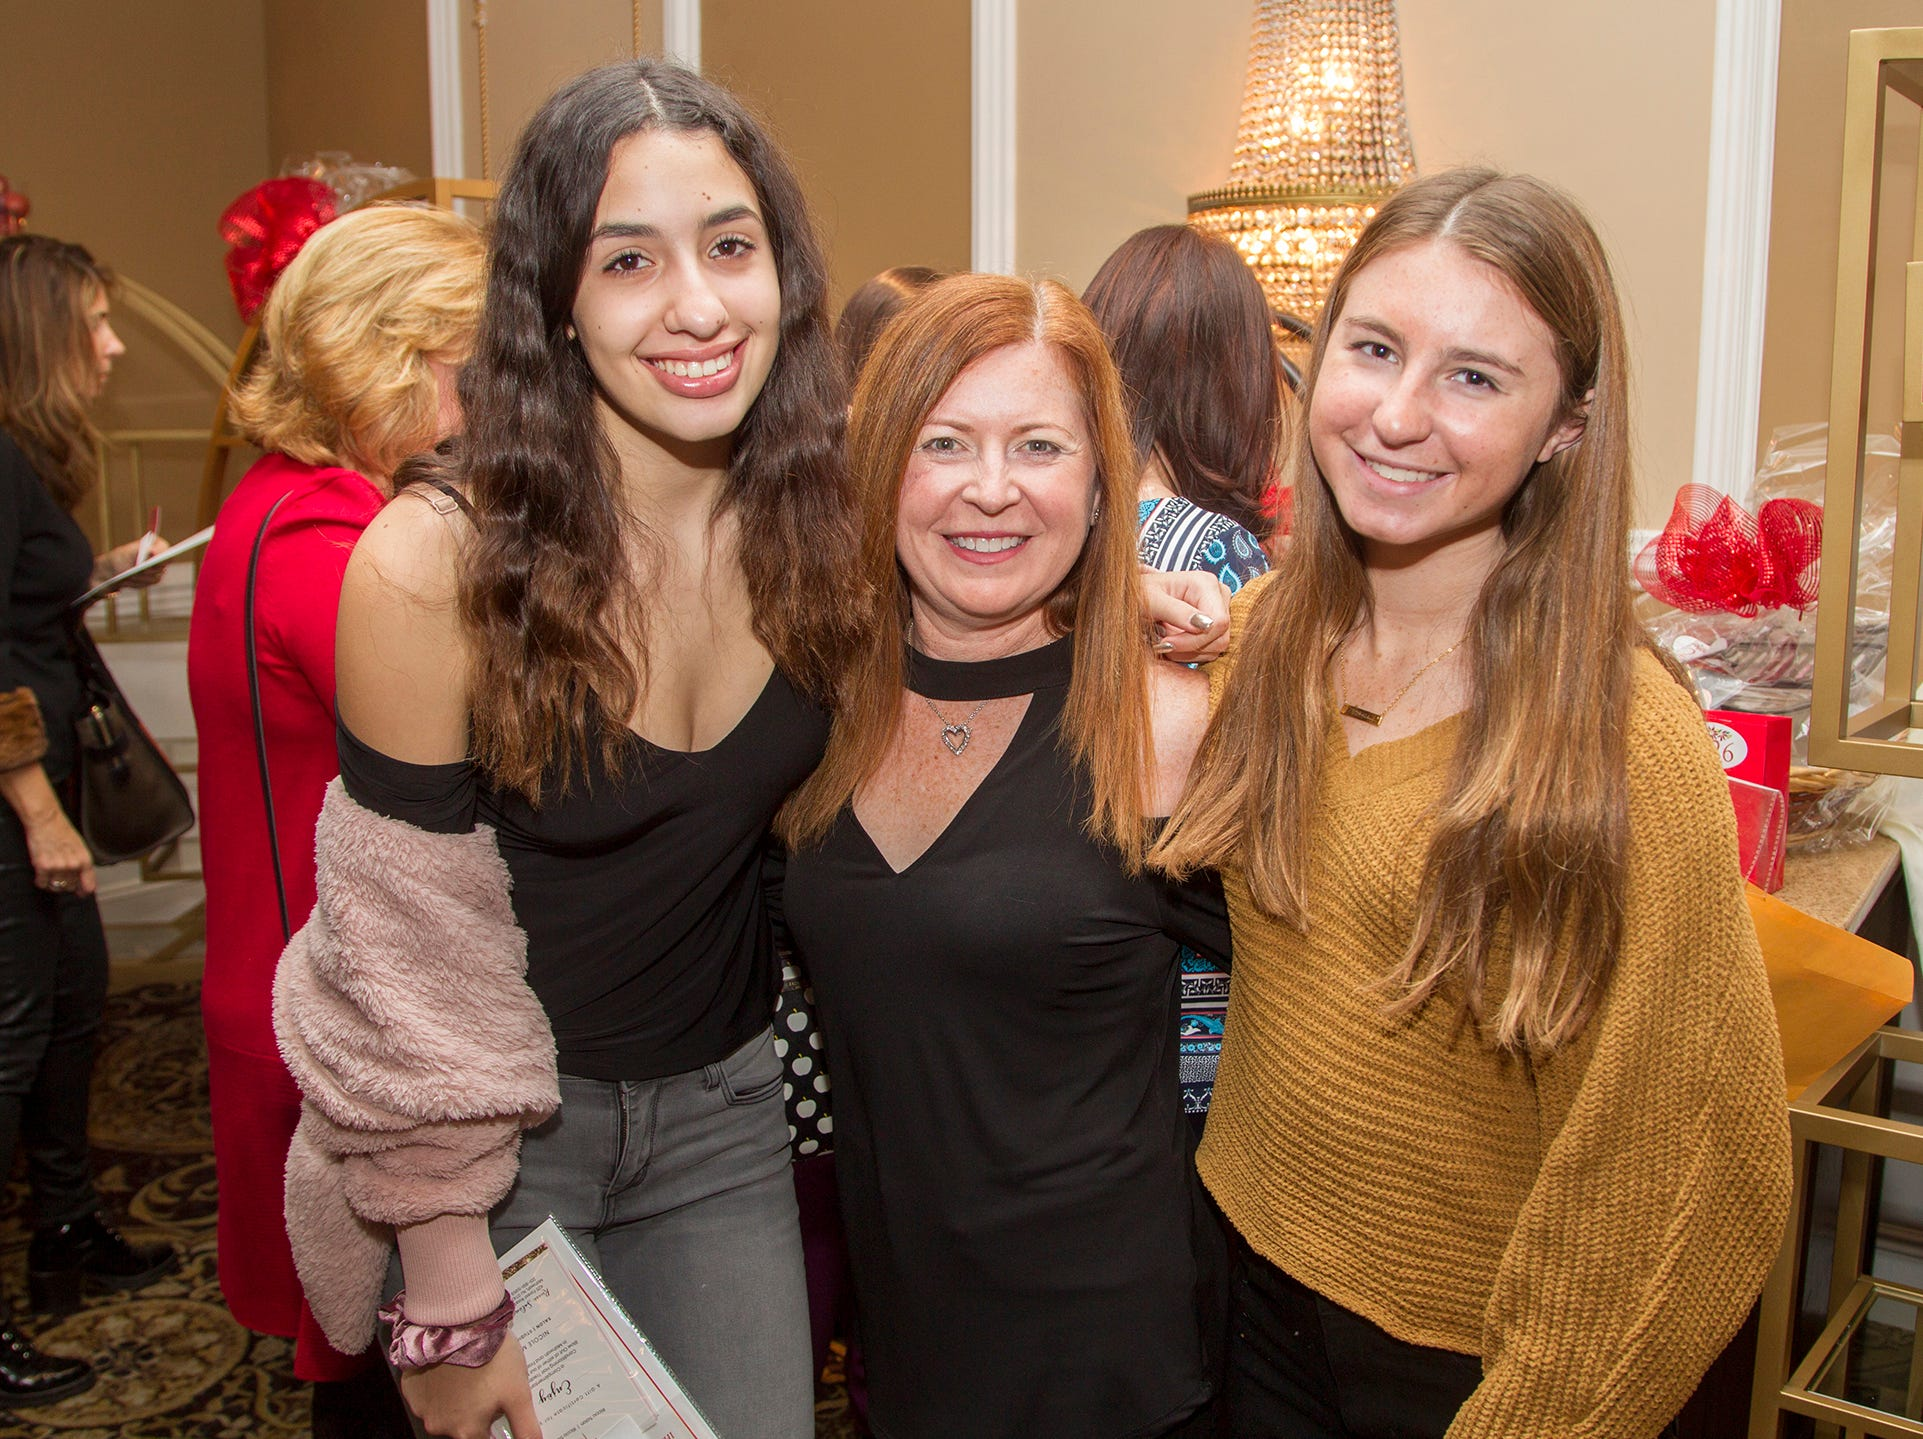 Remi, Larissa Miller, Sophia. Immaculate Heart Academy held its annual Fashion Show fundraiser at Florentine Gardens in River Vale. 12/02/2018